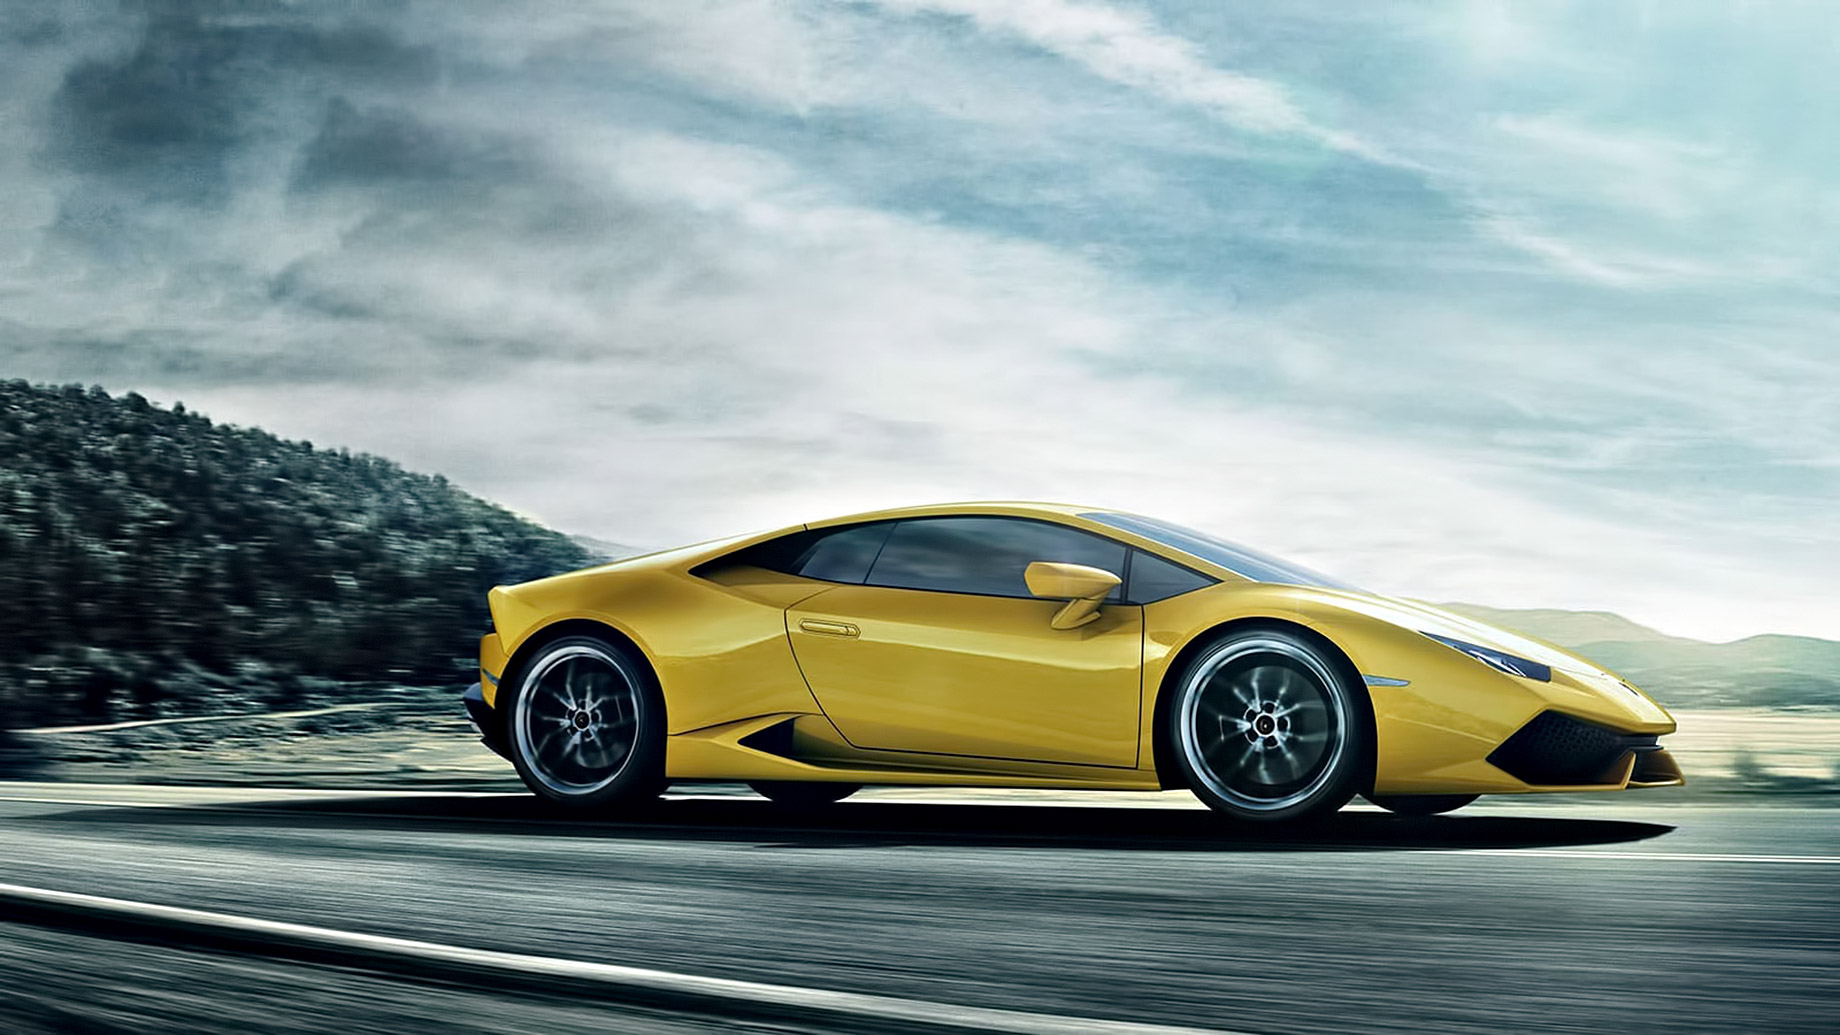 Lamborghini Huracan - Dreaming Big - 6 Luxury Items You Could Purchase if Money Was No Object